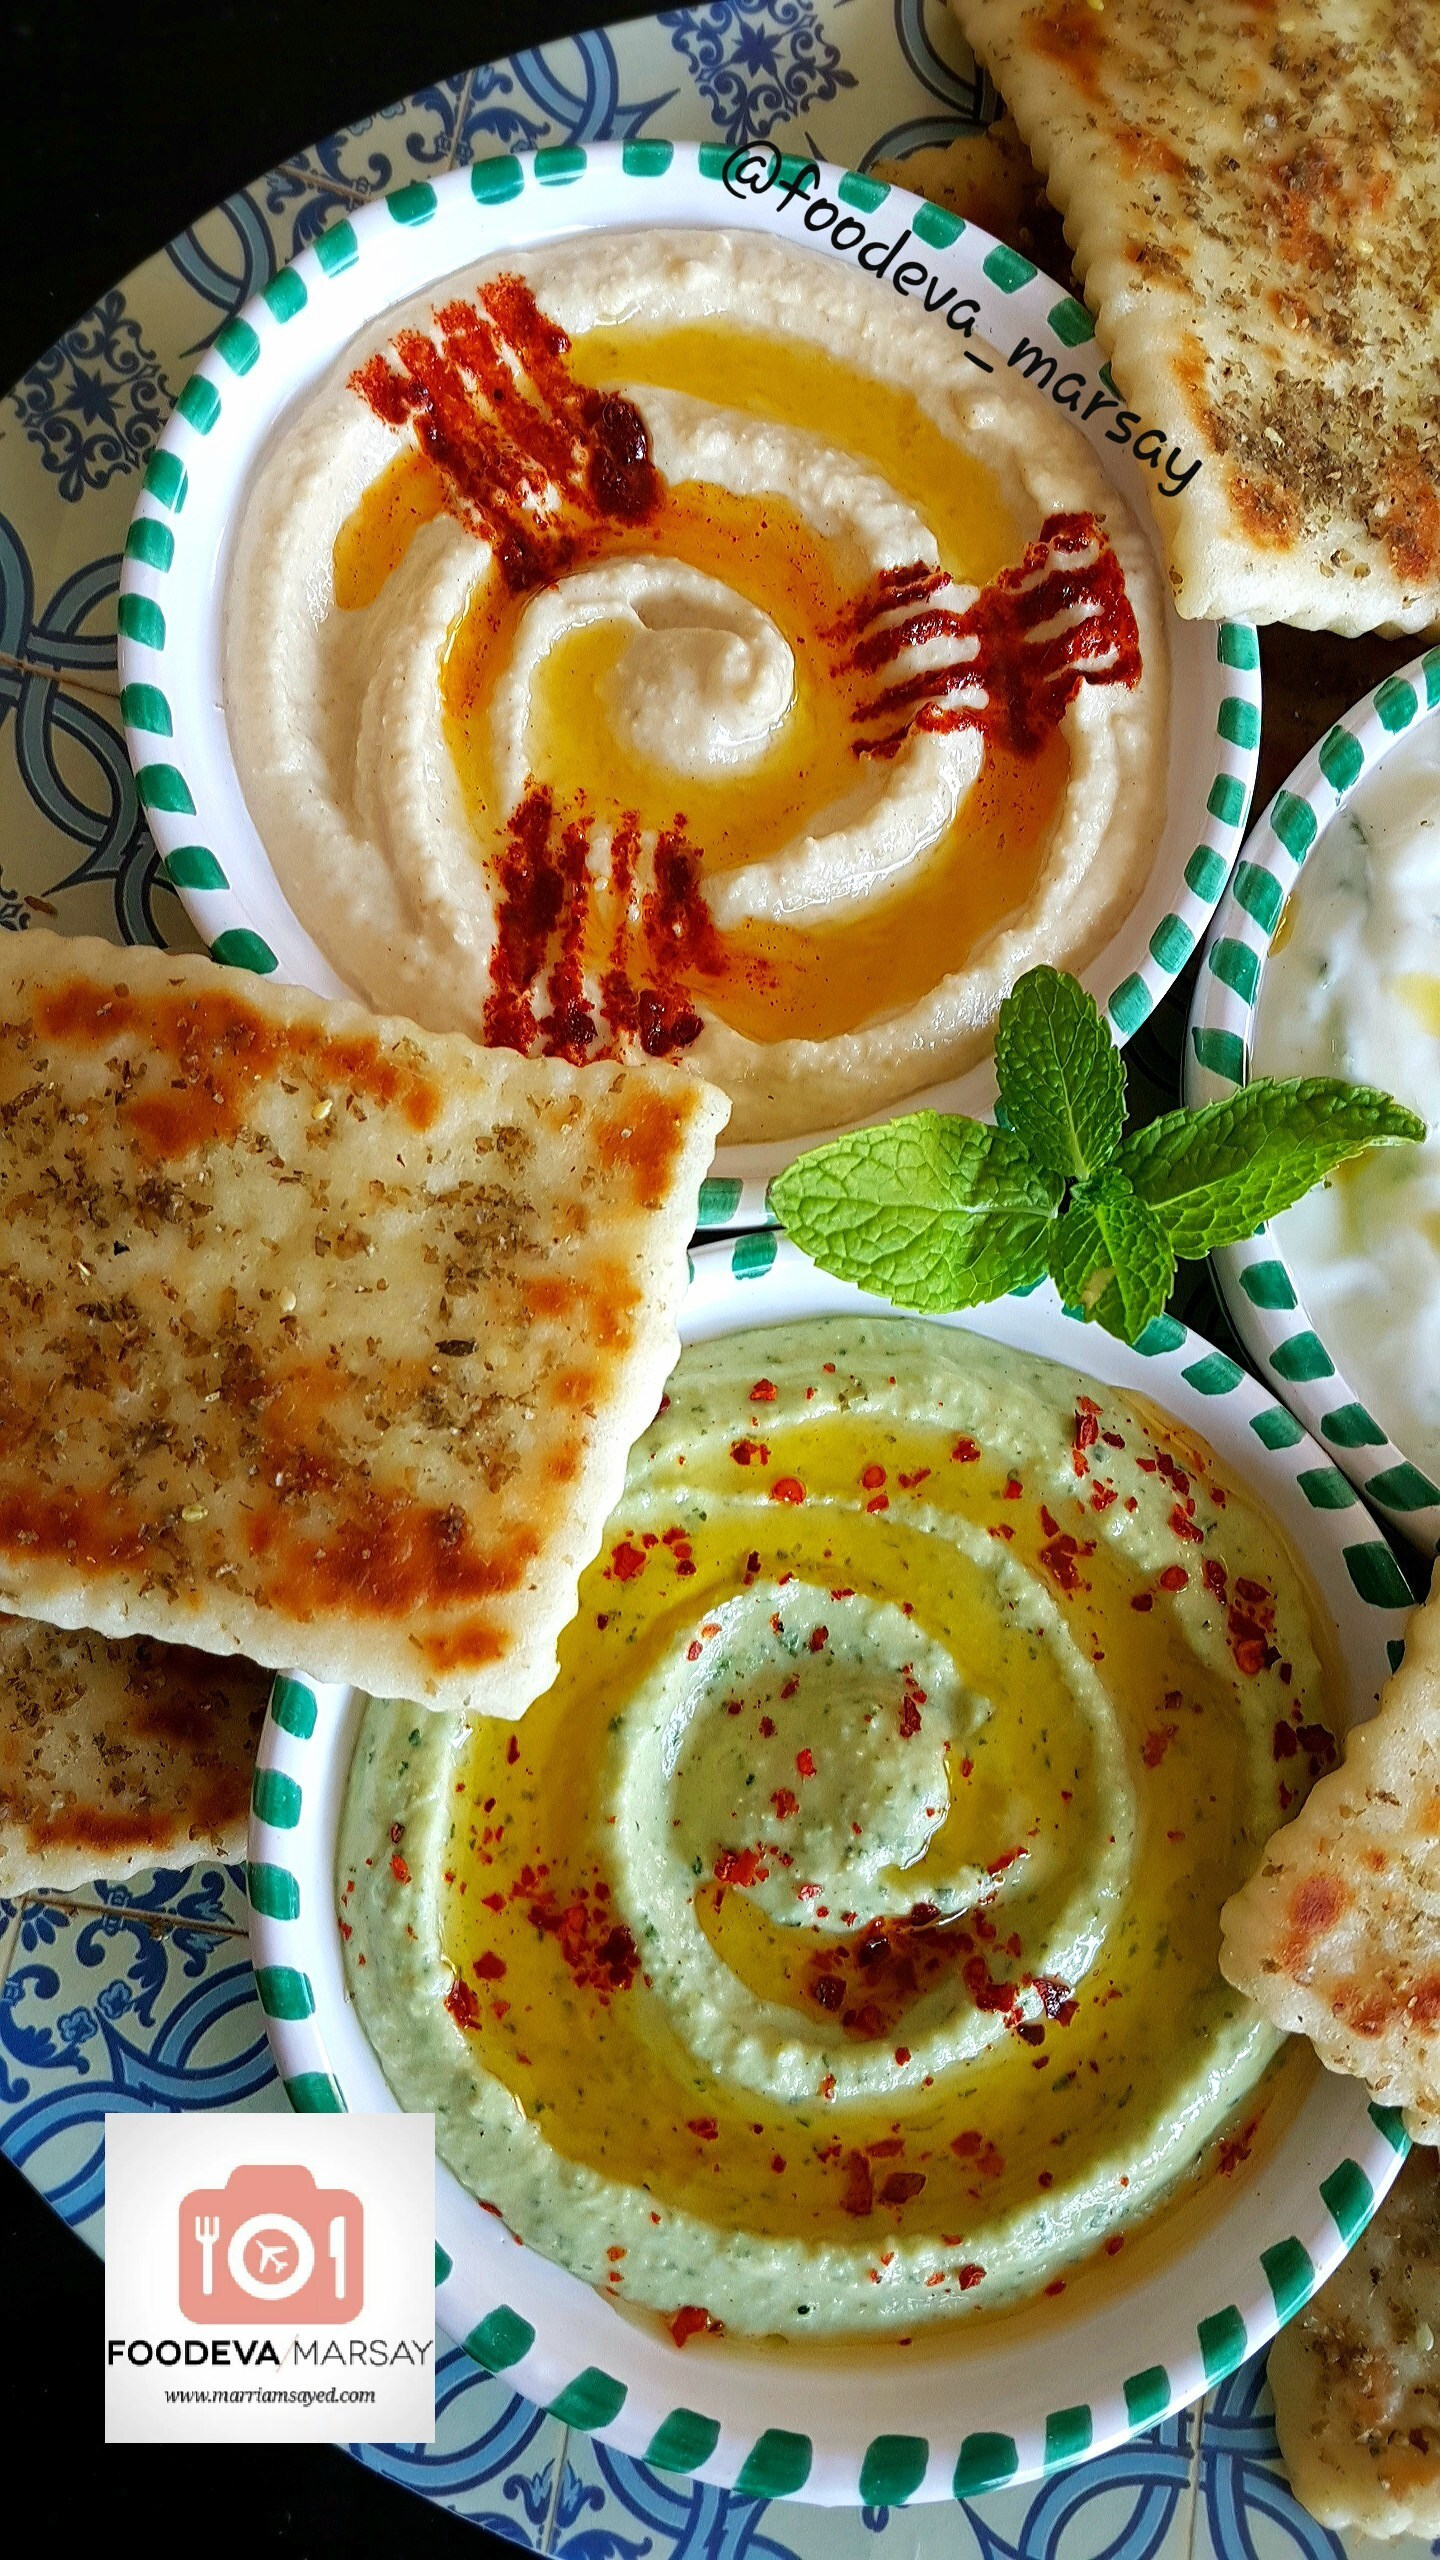 Hummus Variations and How To make Fork Impressions of Paprika/Spice on Hummus (Garnish Hummus)